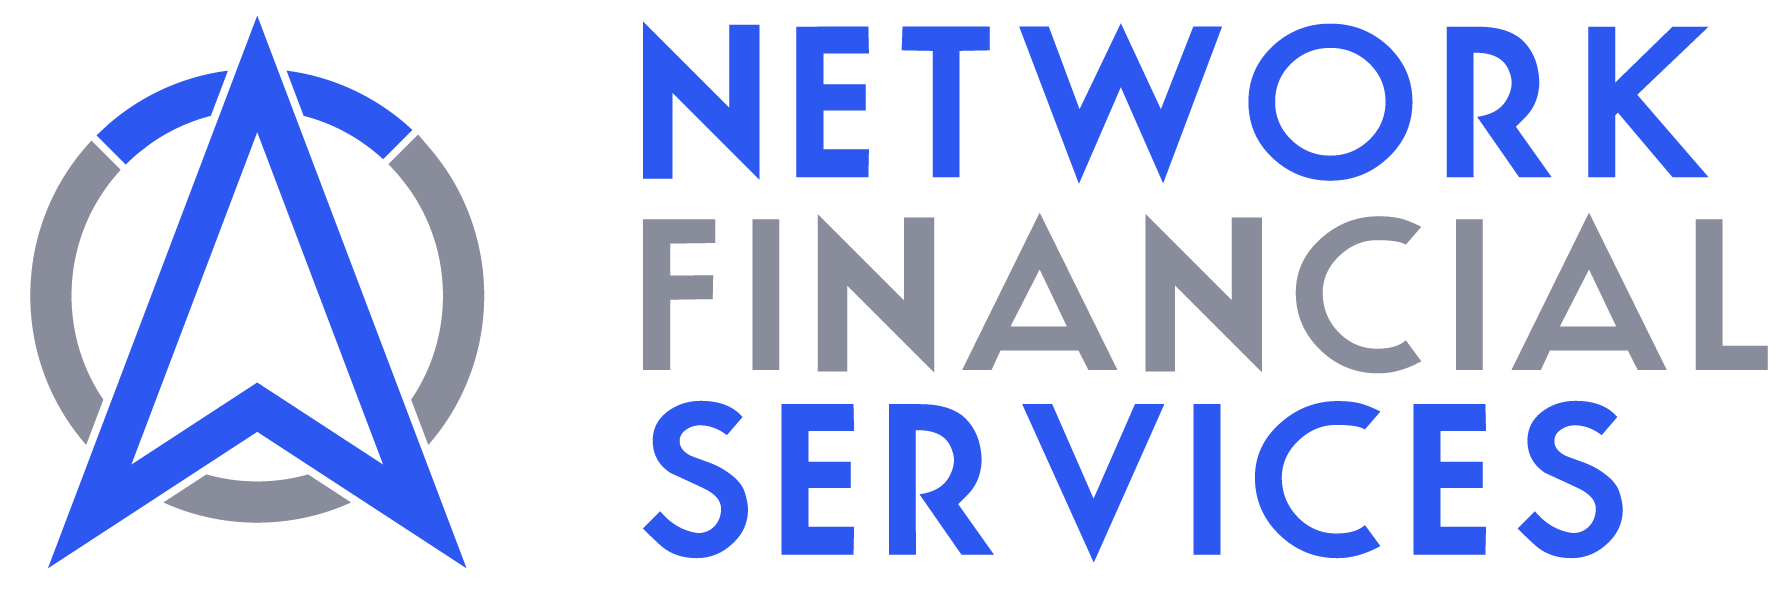 Network Financial Services